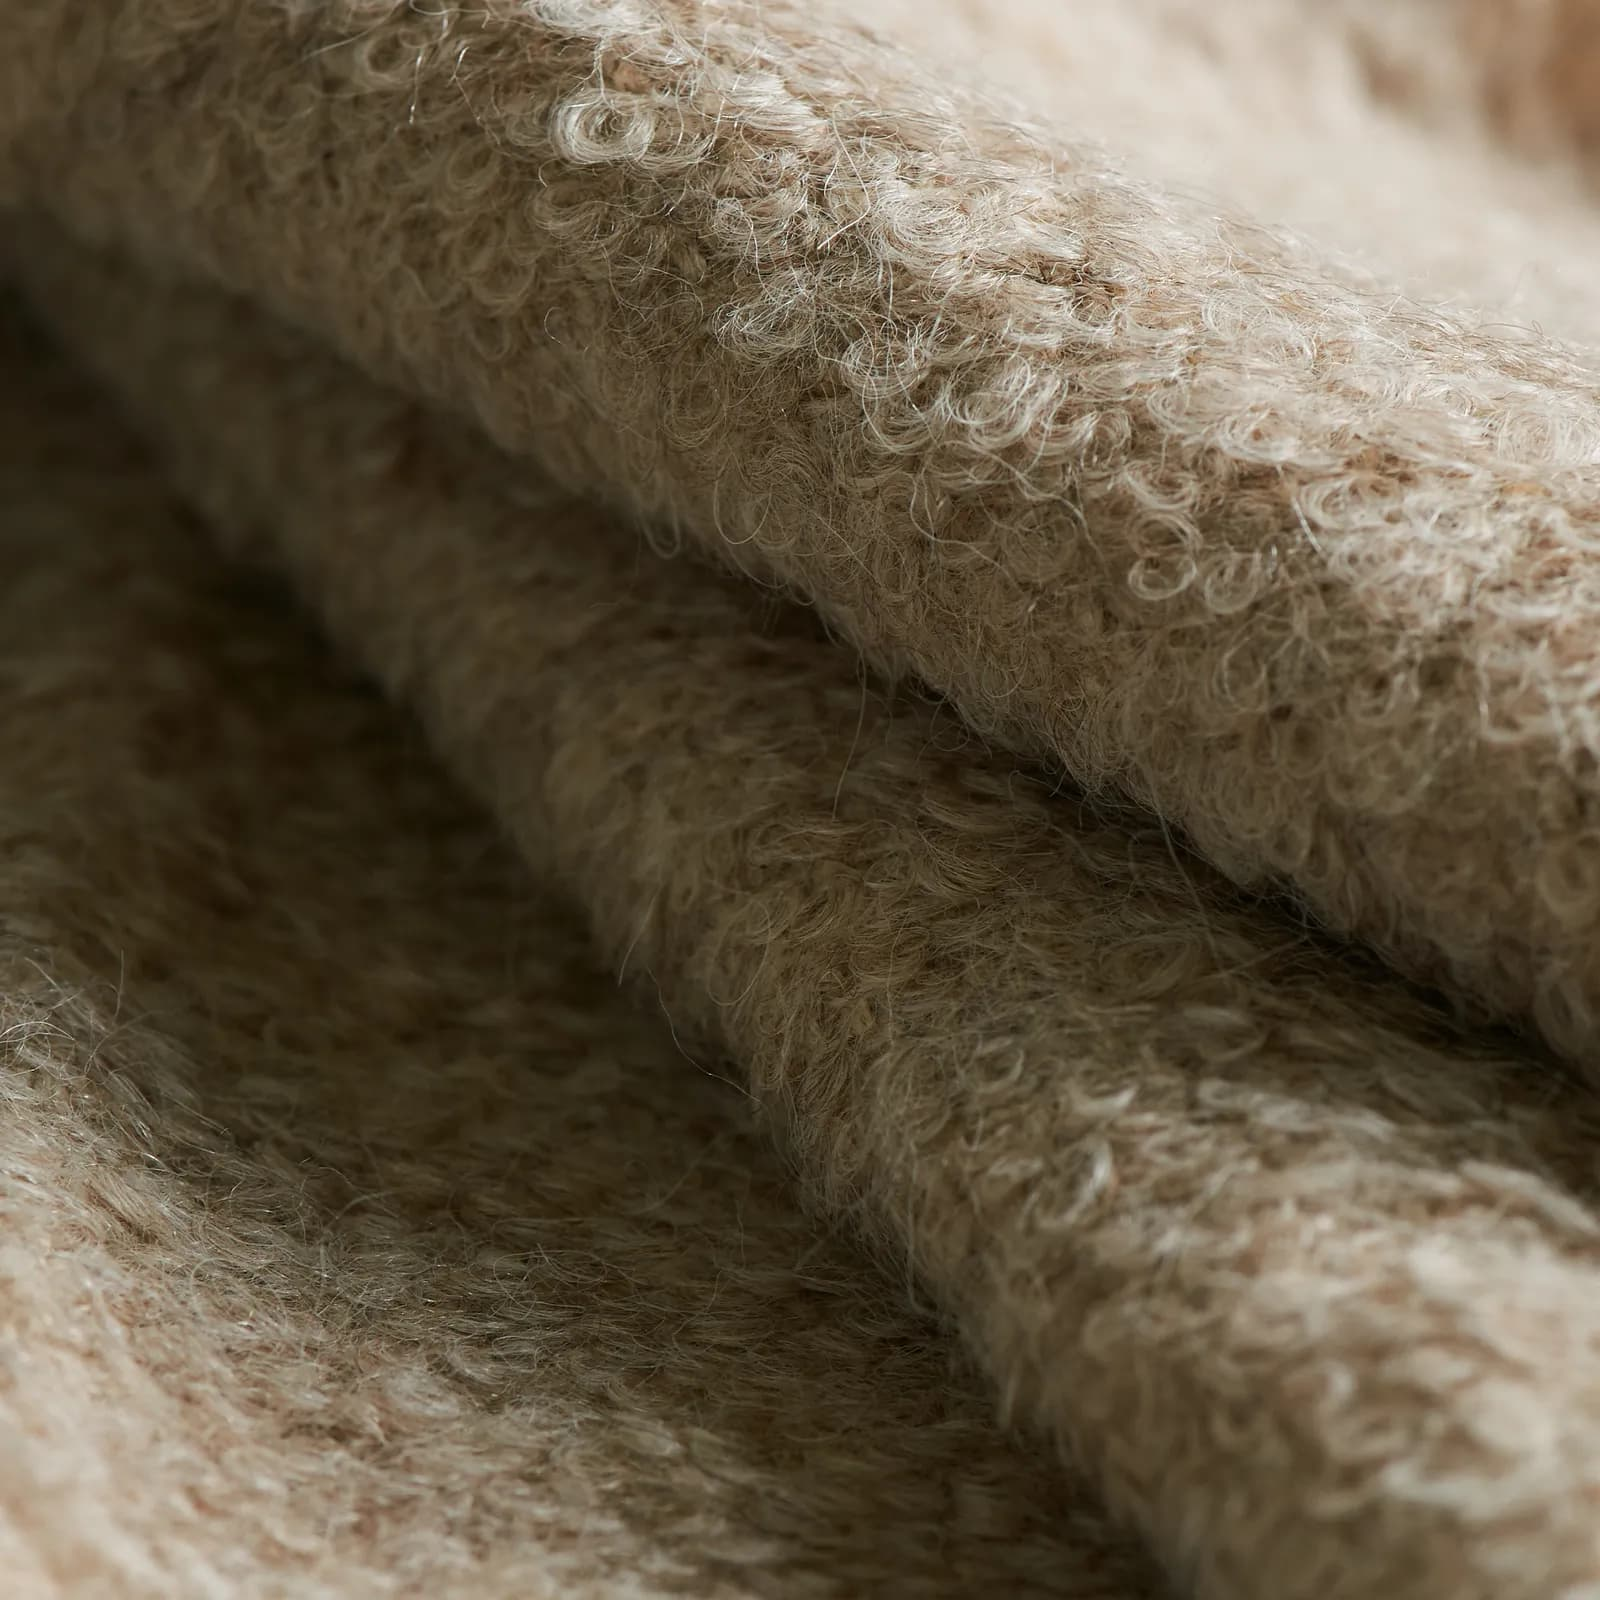 this is a close up of boucle yarn